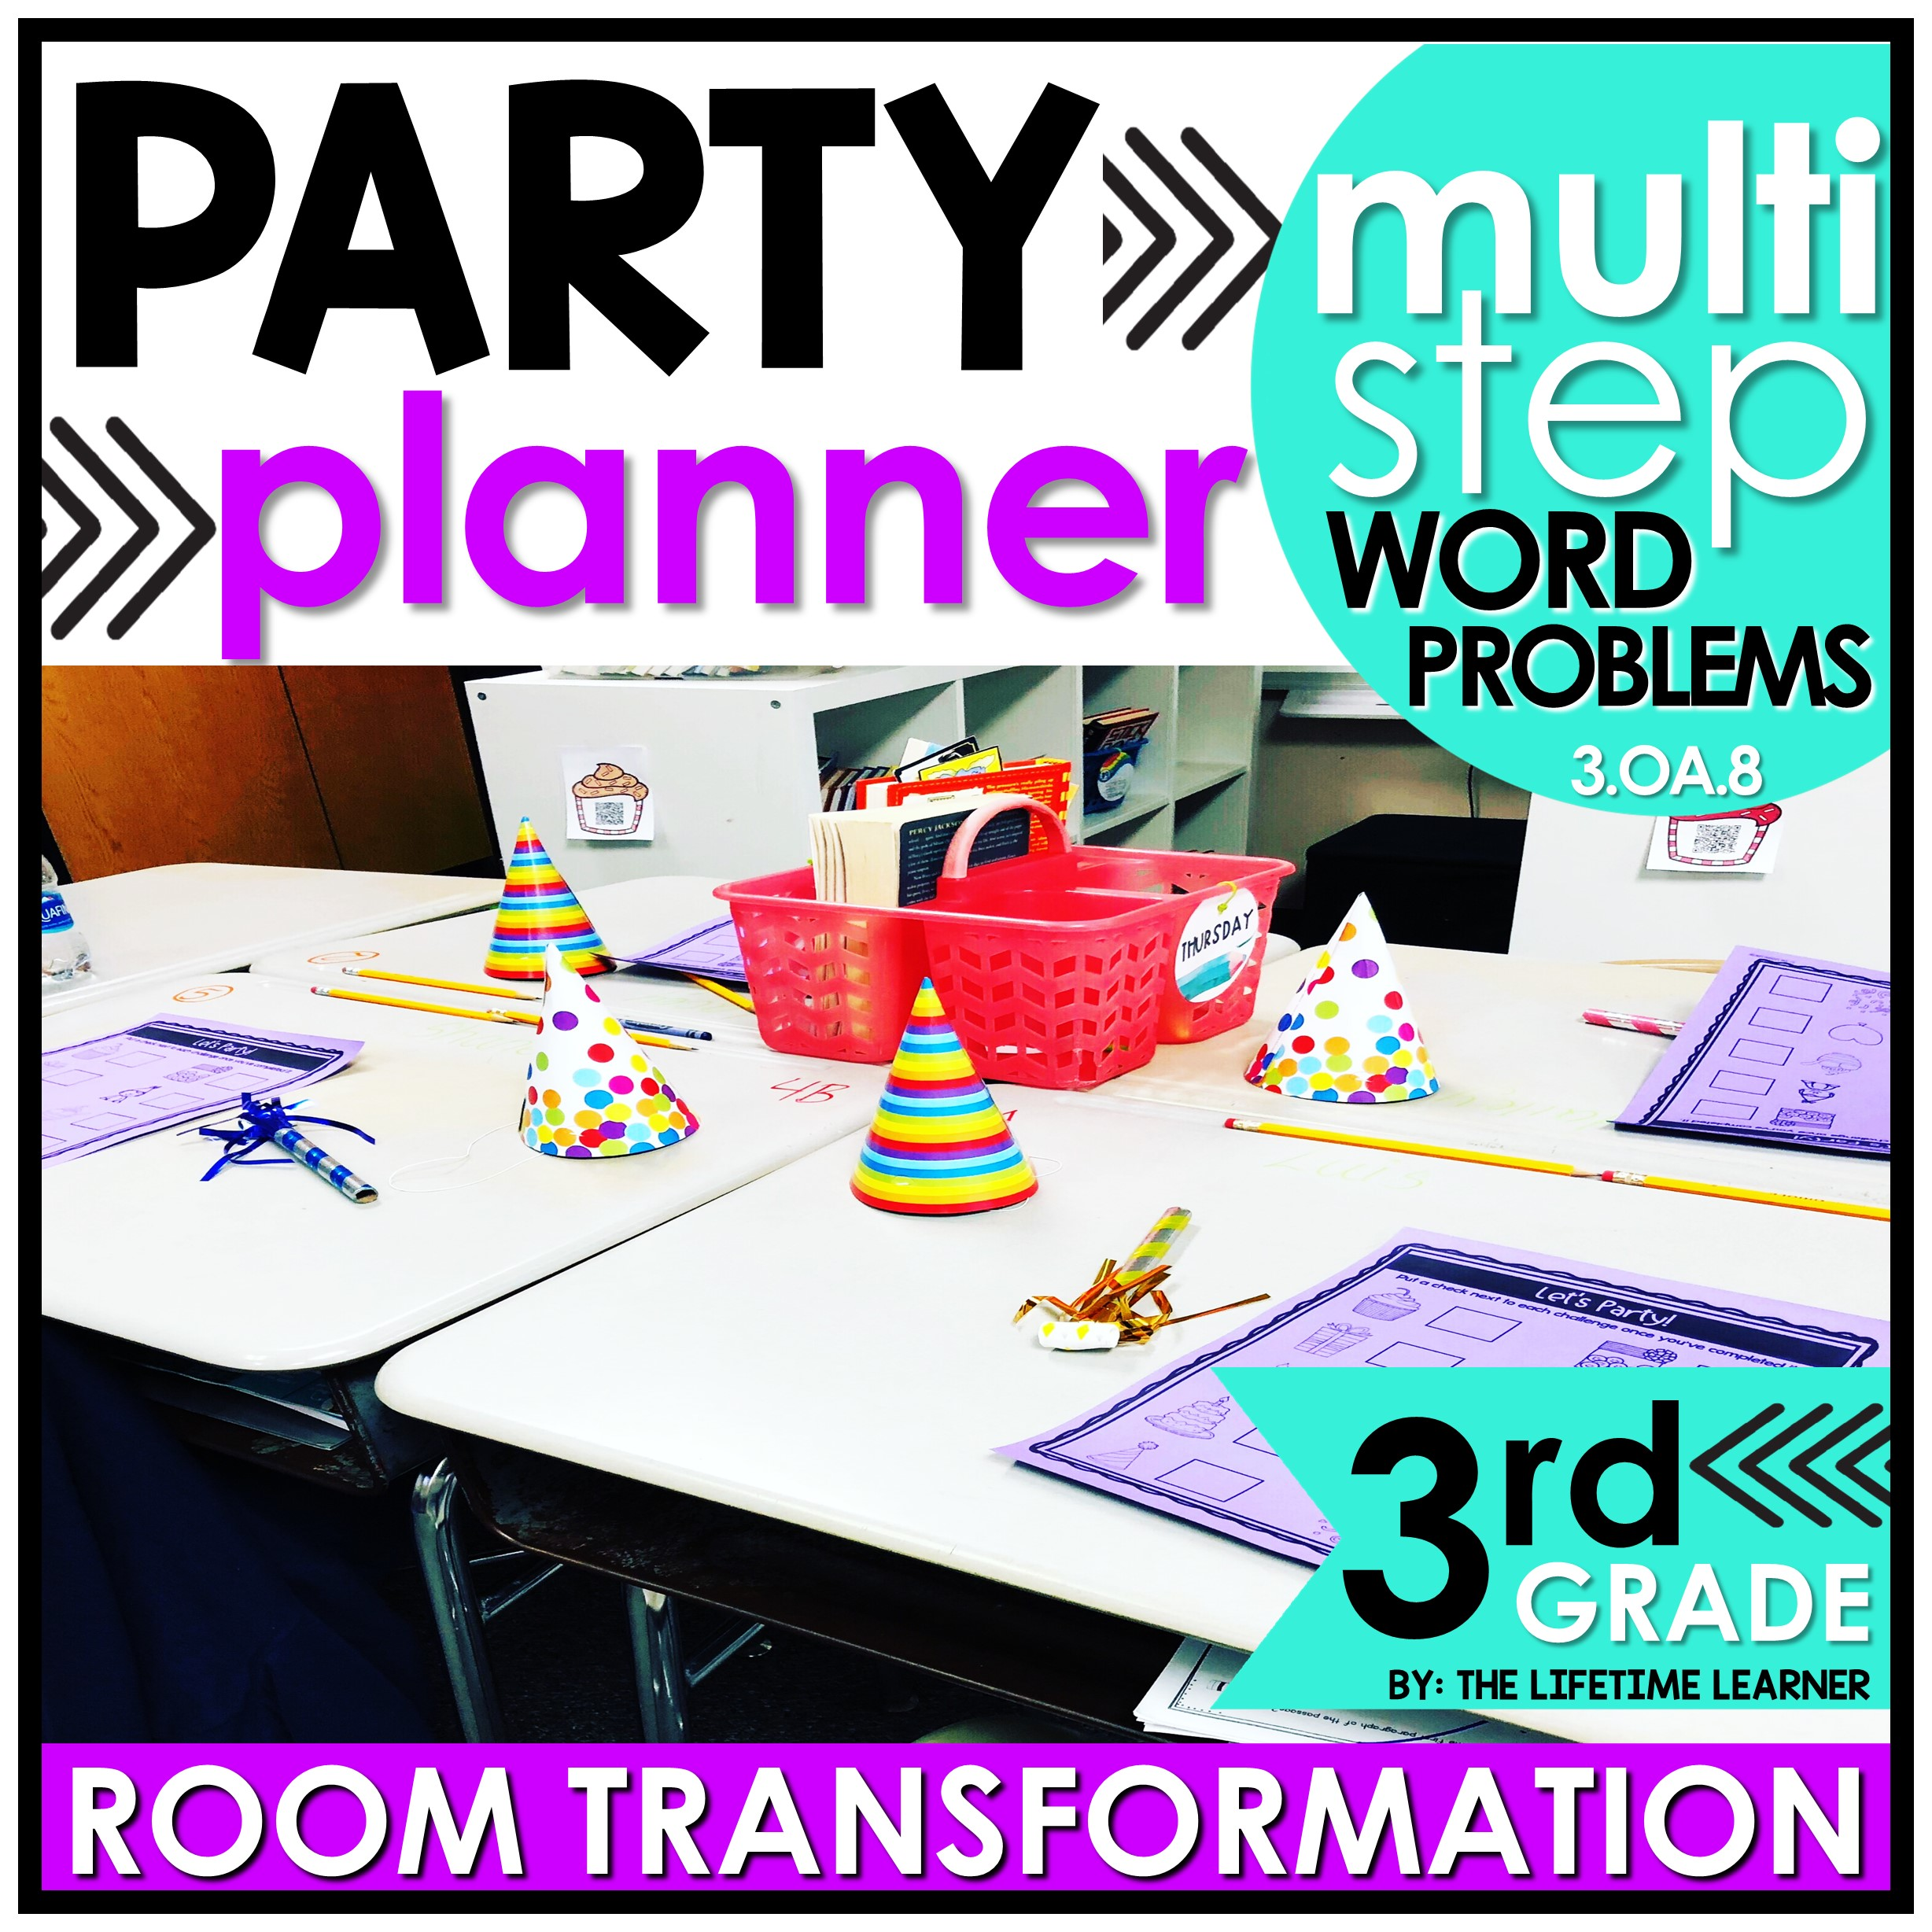 3rd Grade Multi-Step Word Problems   Party Planner Classroom Transformation  - The Lifetime Learner [ 2456 x 2456 Pixel ]